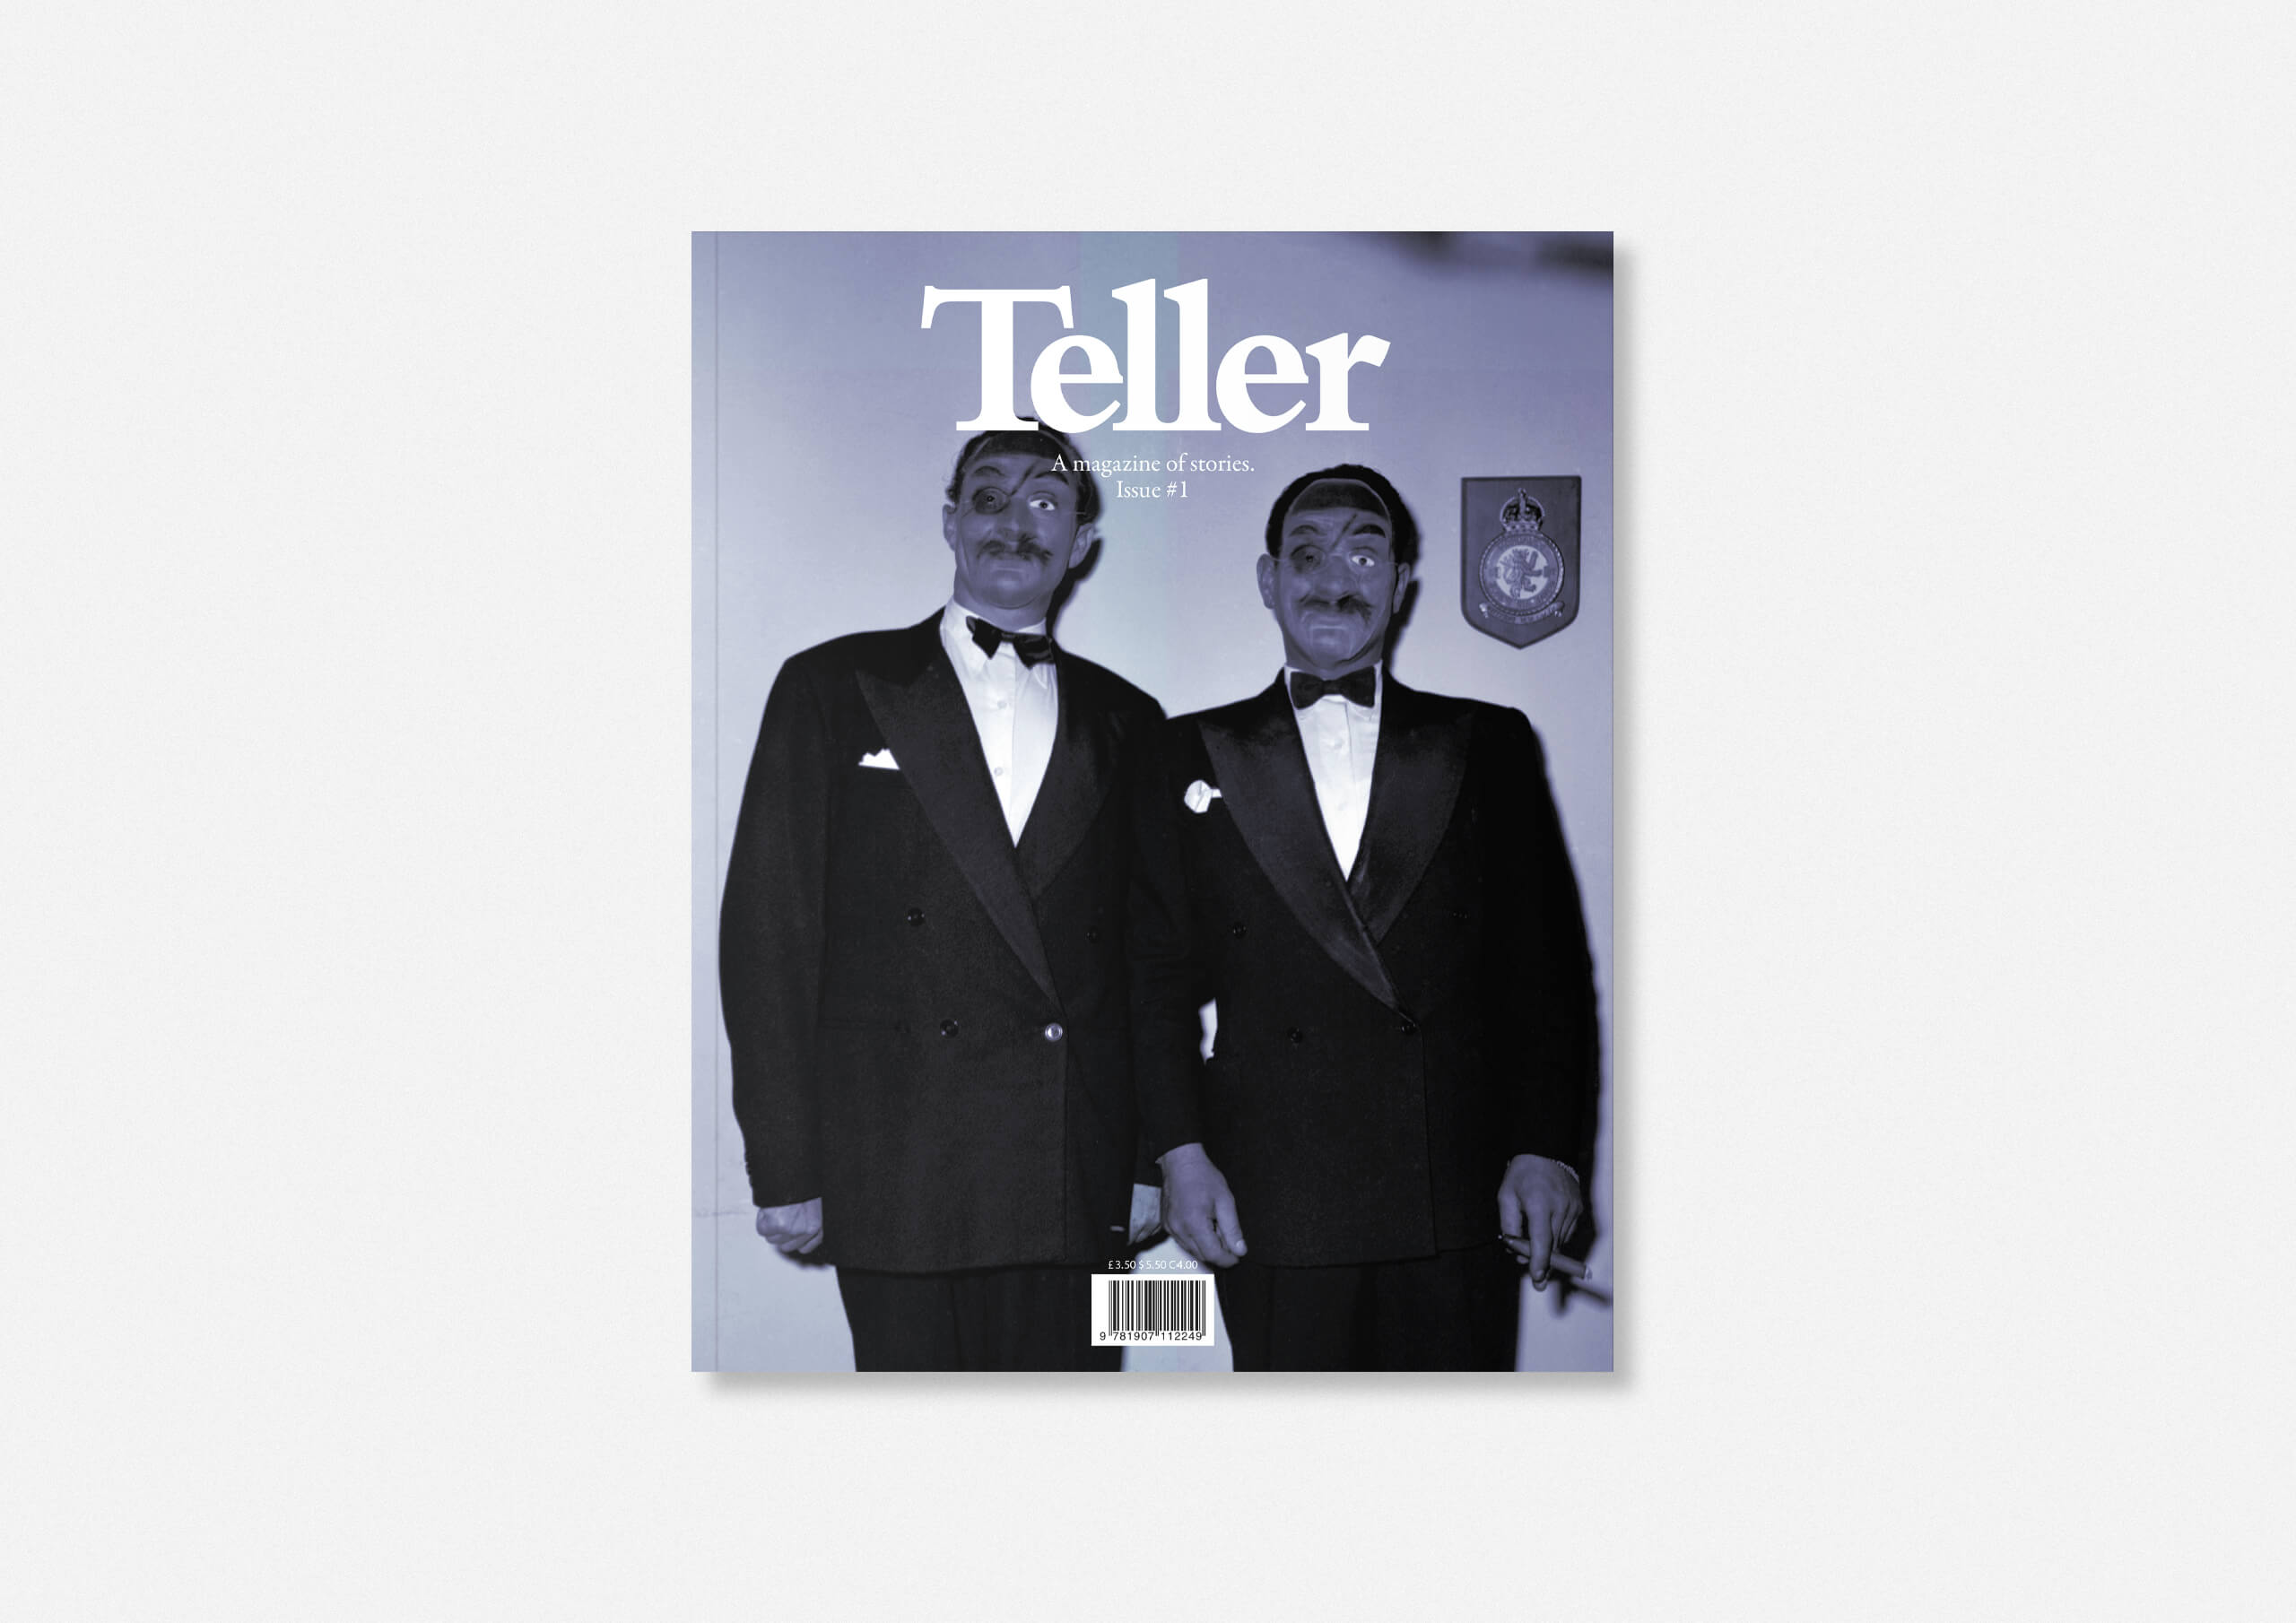 http://www.neuegestaltung.de/media/pages/clients/teller-magazine-issue-1/fed97293a4-1597415428/teller_issue_01_vorderseite_ng.jpg